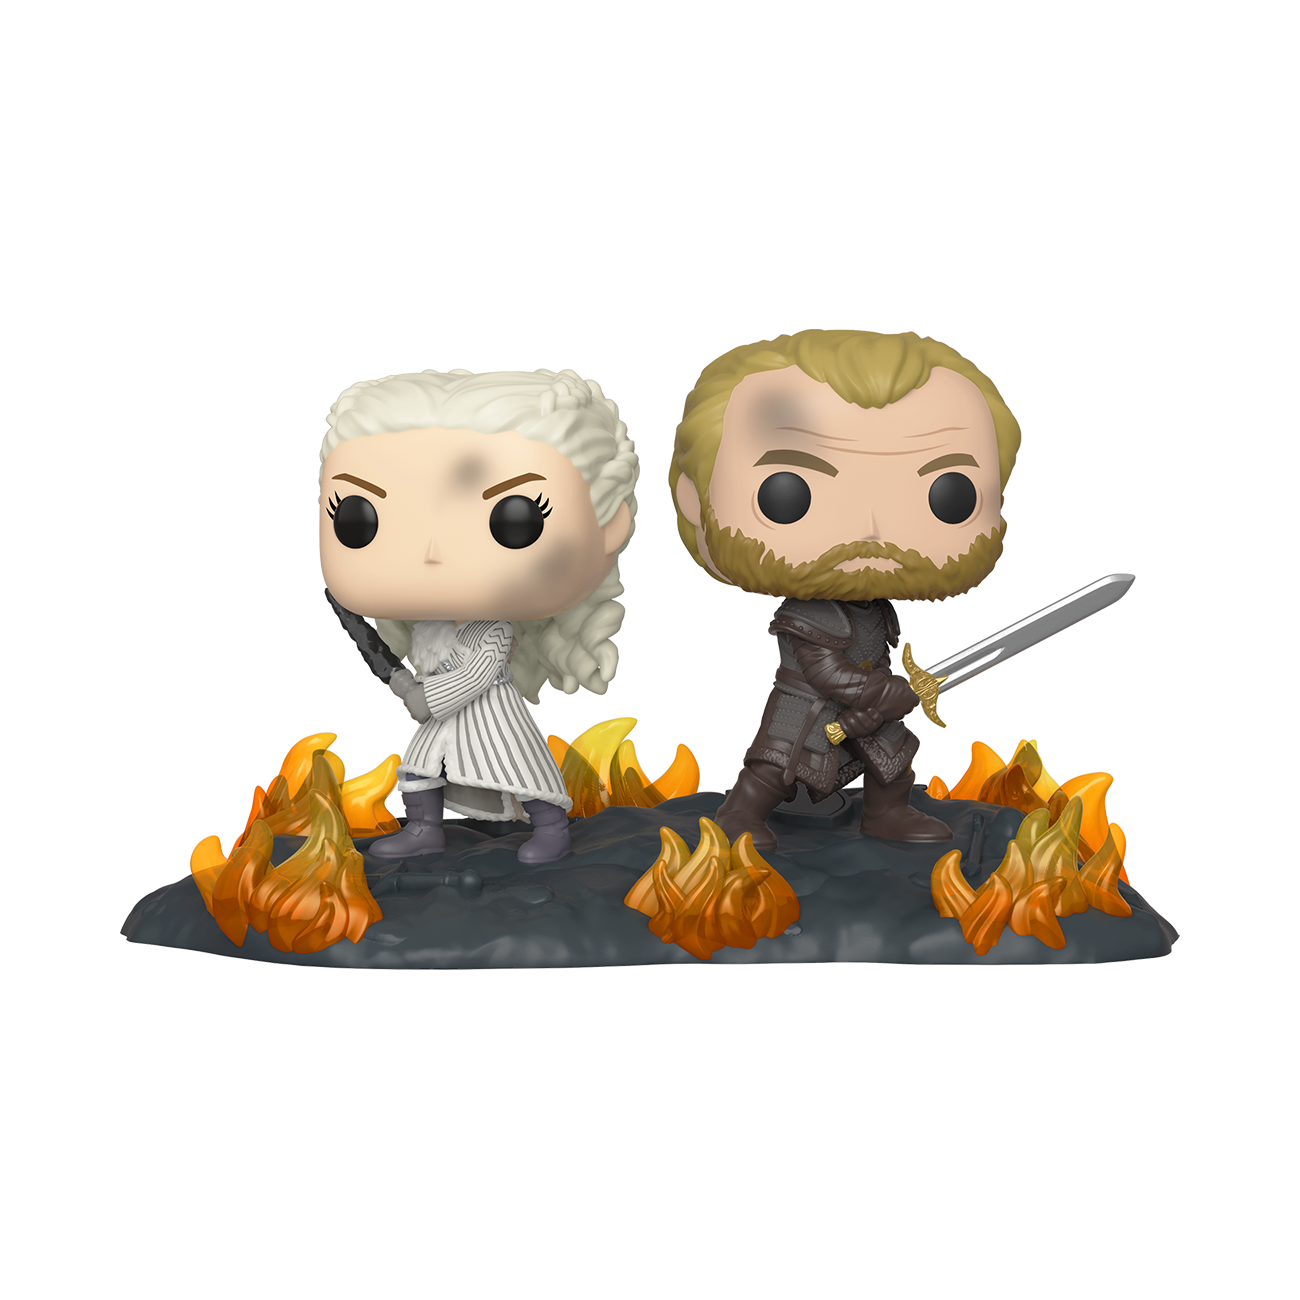 Funko Deluxe Pops - $10 - Game of Thrones Daenerys and Jorah with Swords and others